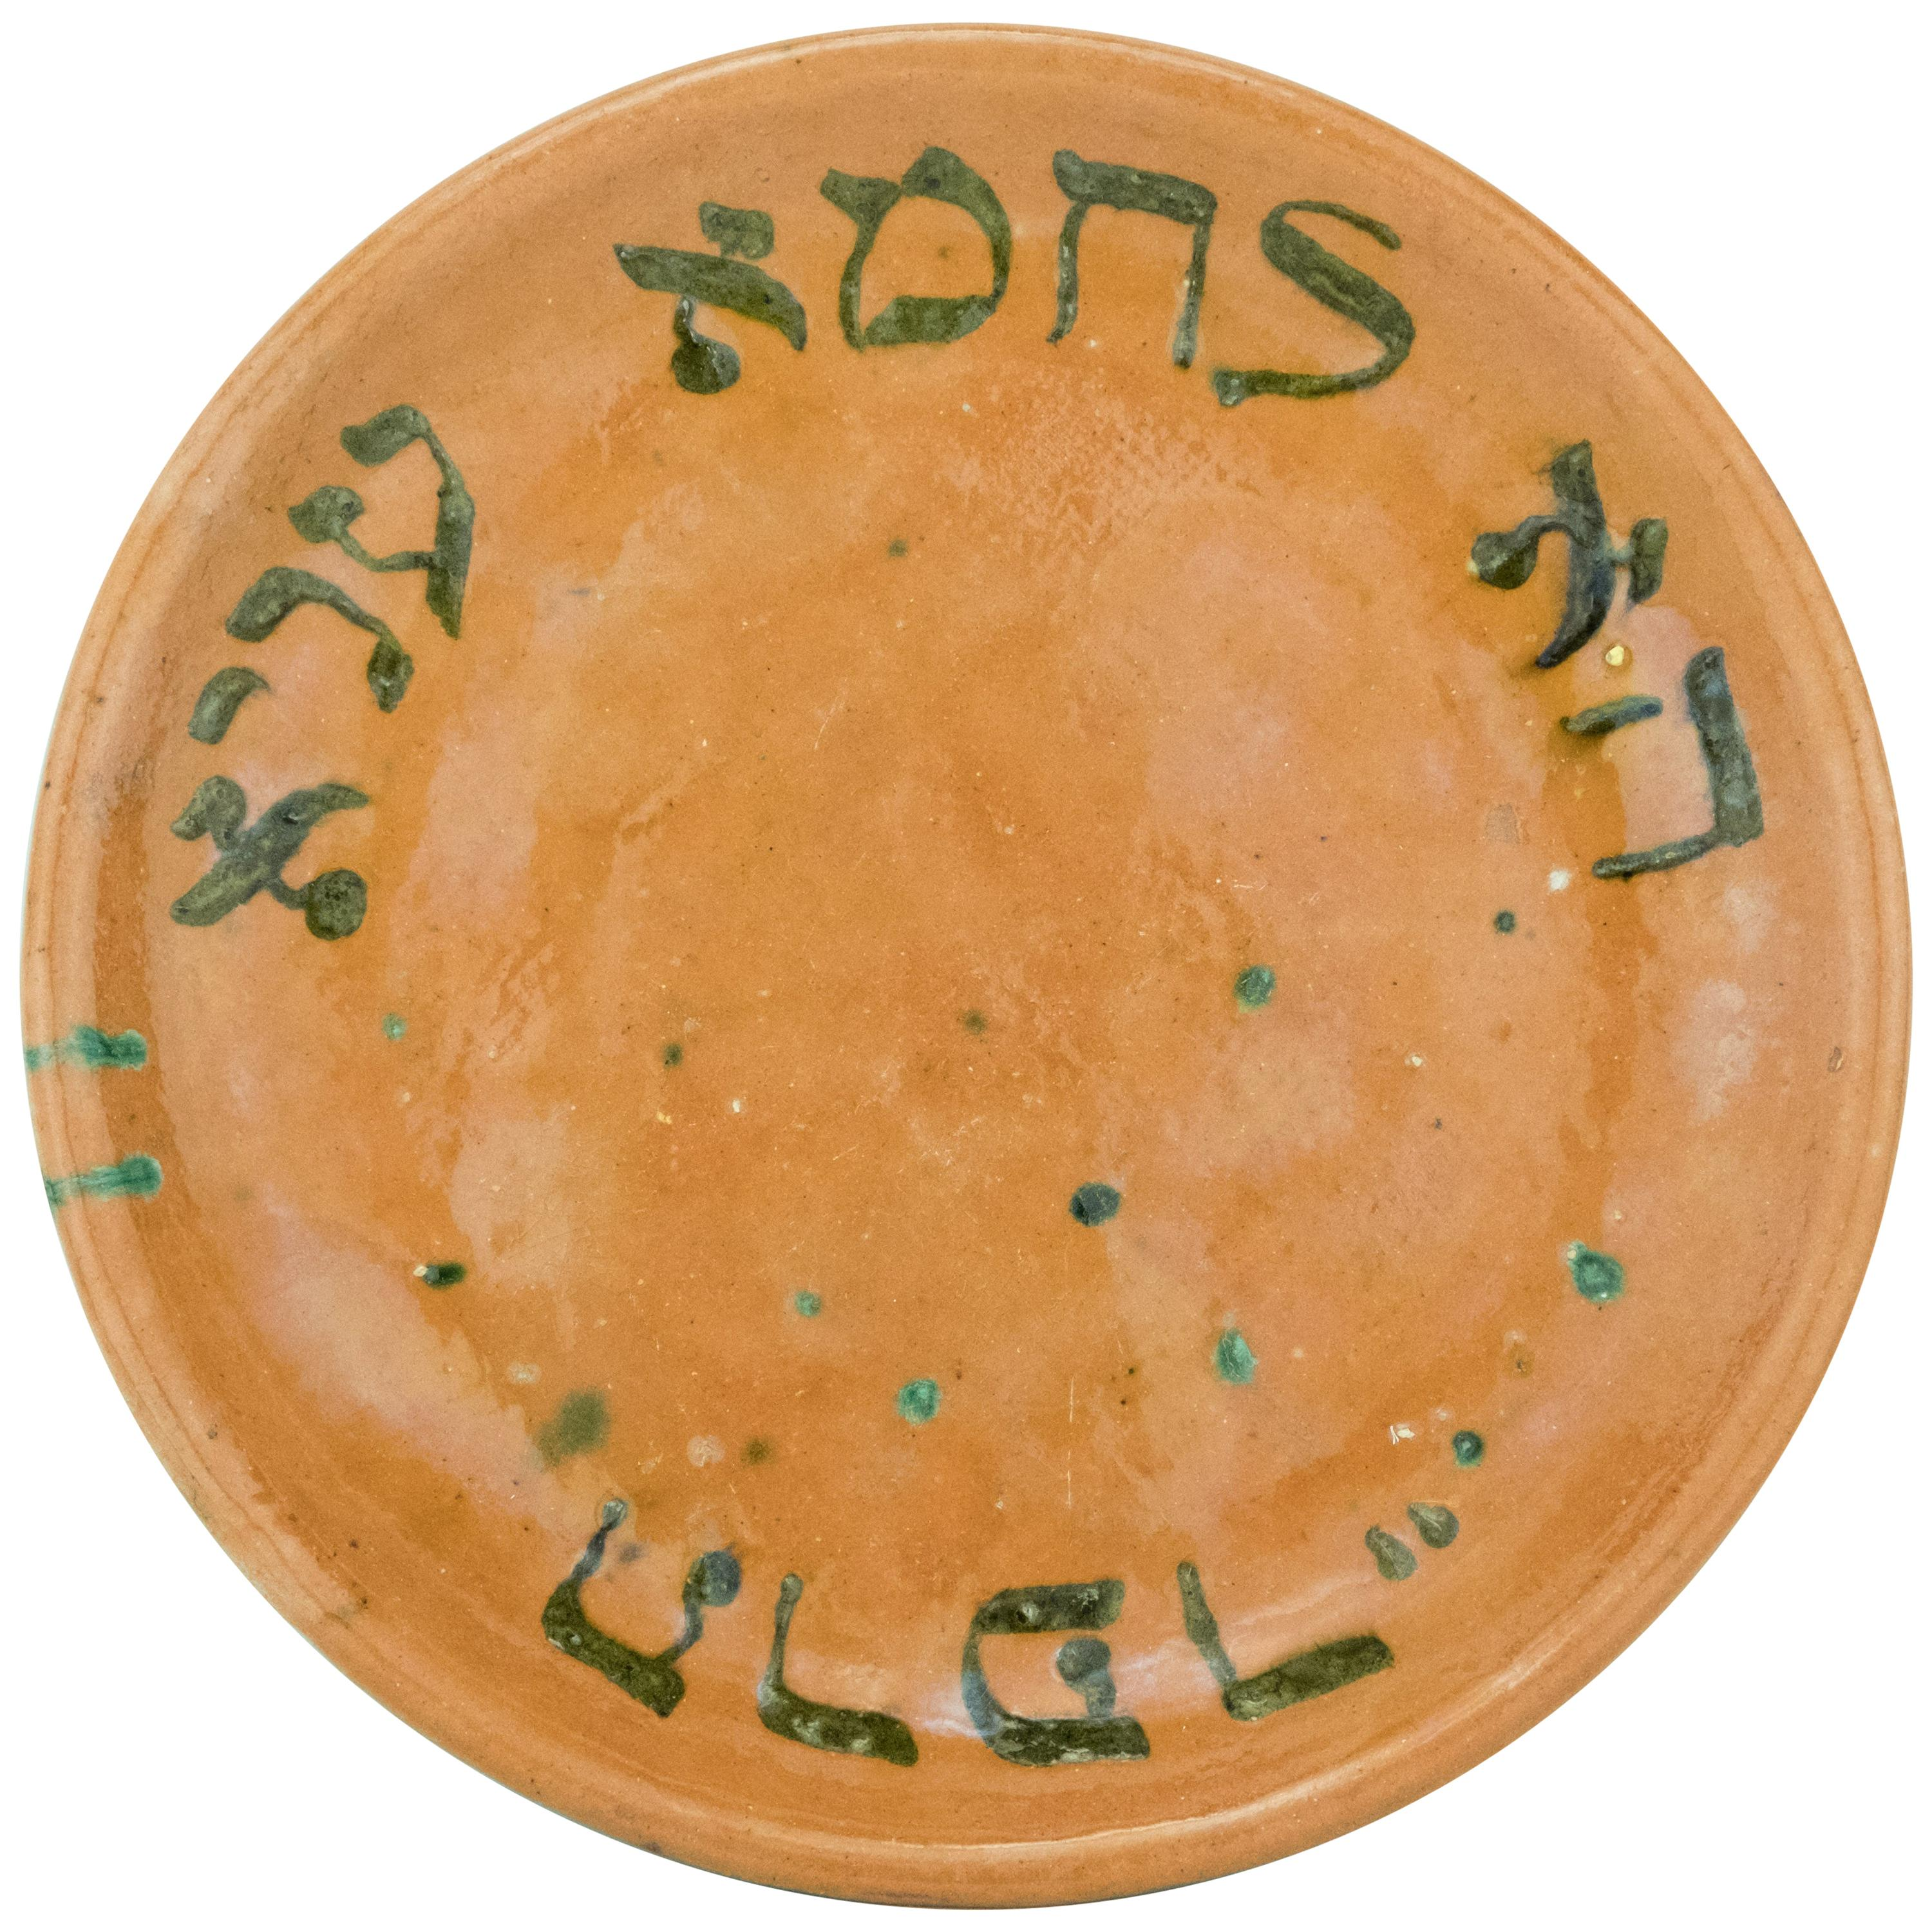 Early 20th Century Glazed Earthenware Passover Plate